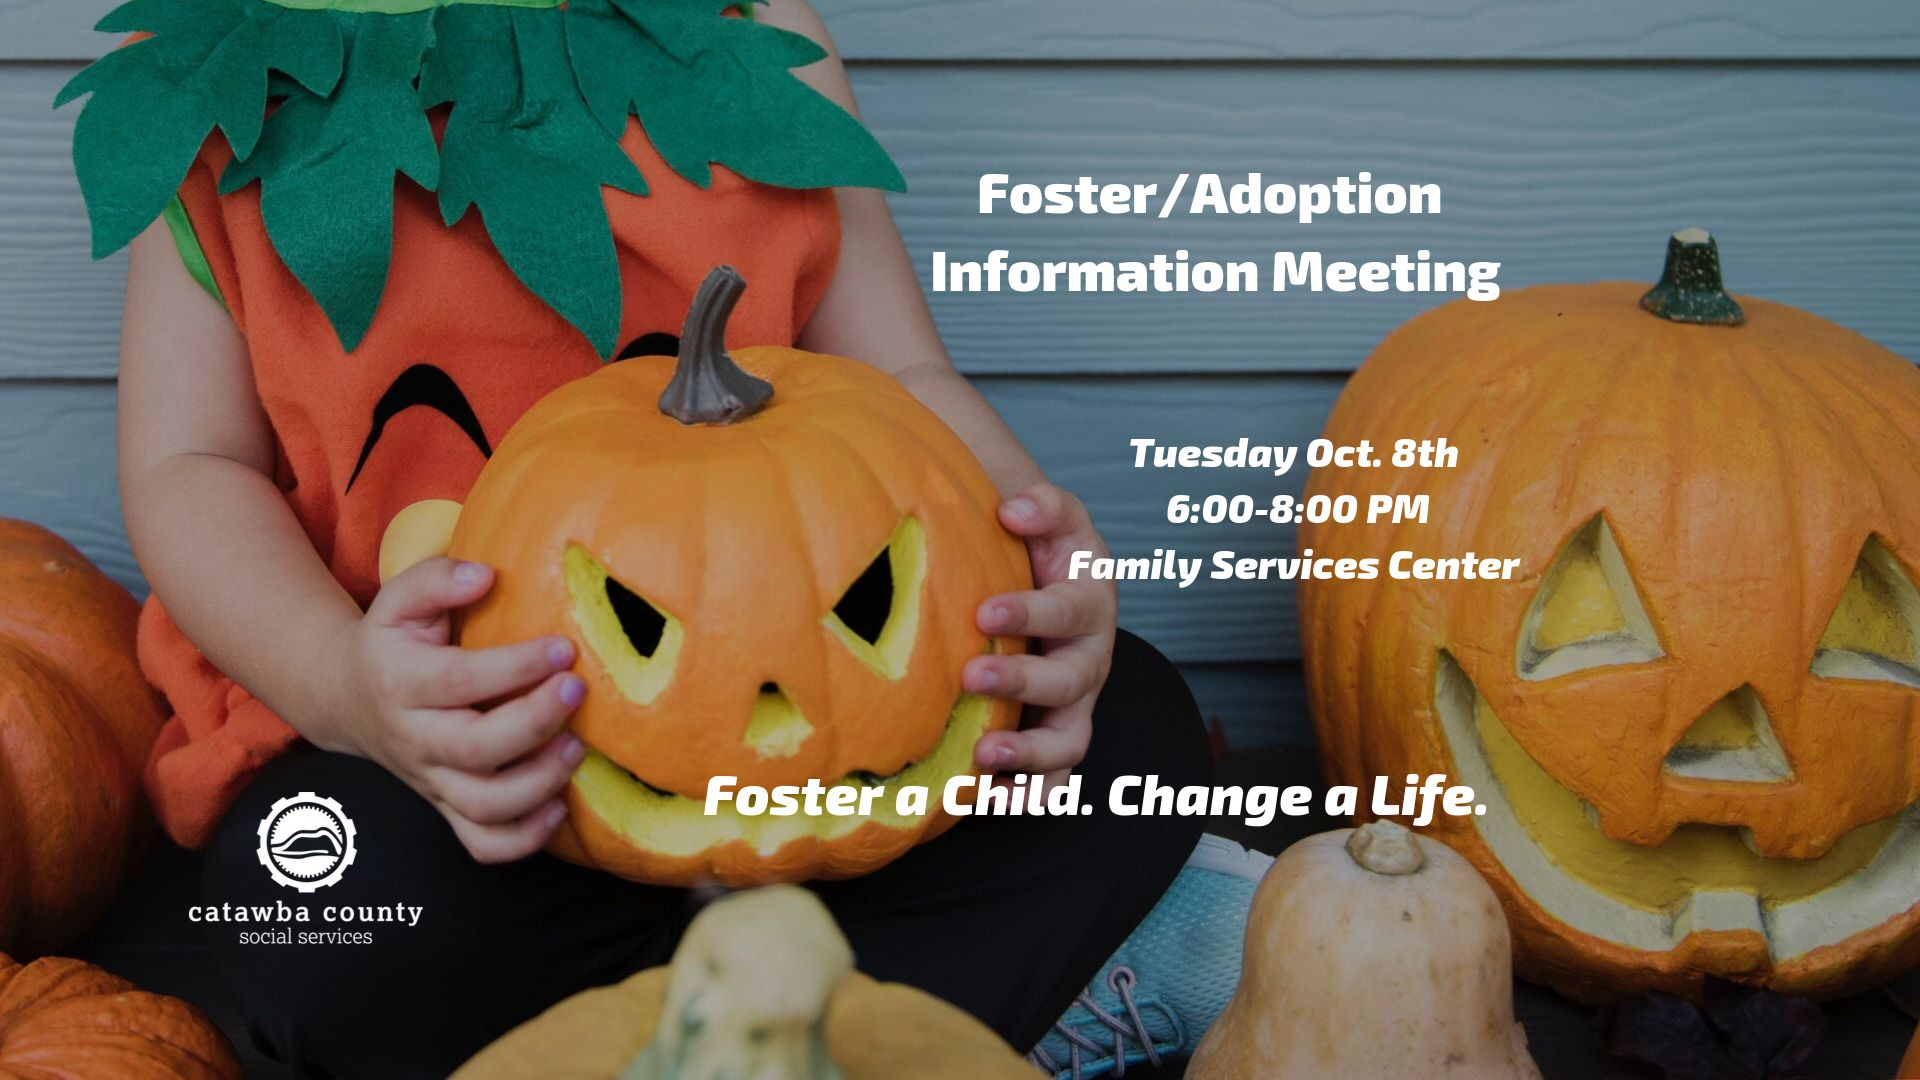 Foster/Adoption Information Meeting Oct 8, 2019